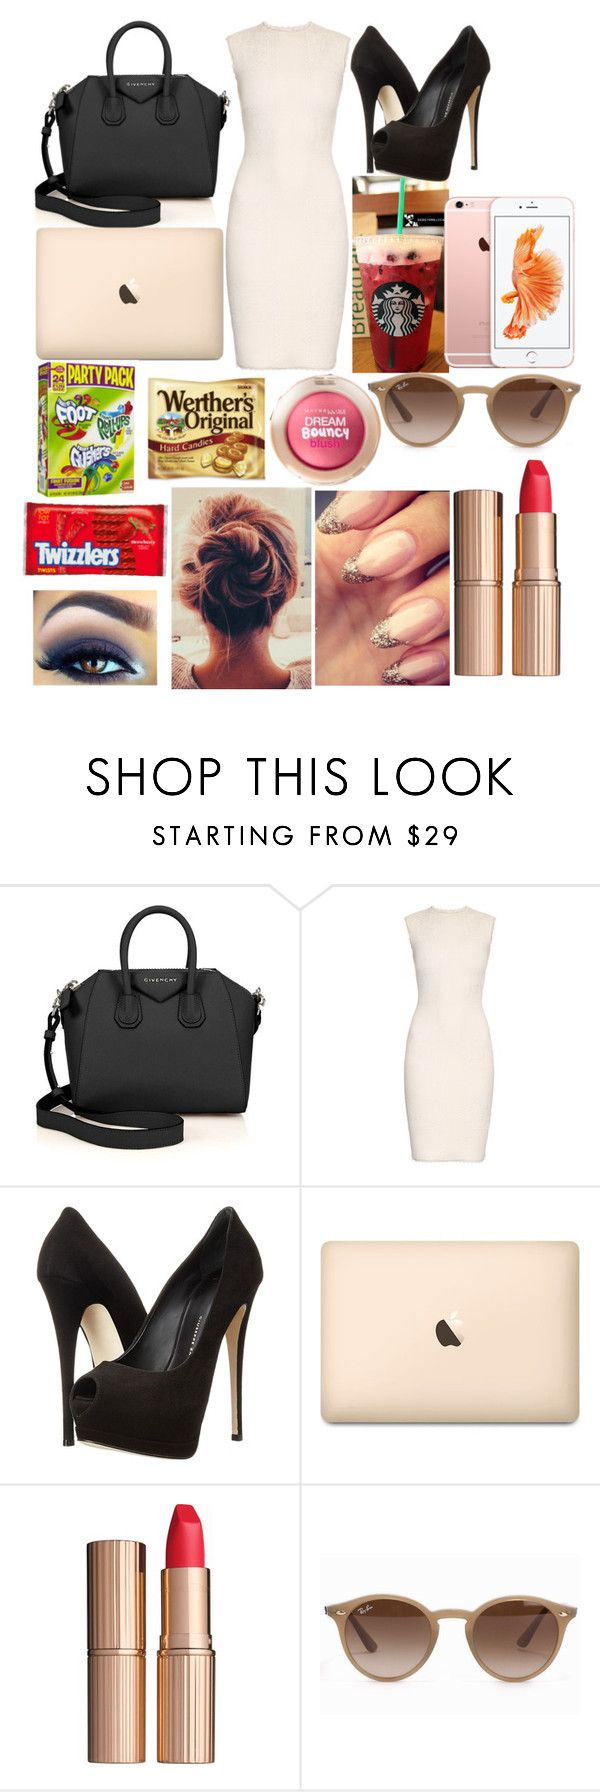 """Work Day Outfit"" by sofi-the-first1912 on Polyvore featuring Givenchy, Alexander McQueen, Giuseppe Zanotti, Charlotte Tilbury, Ray-Ban and Maybelline"